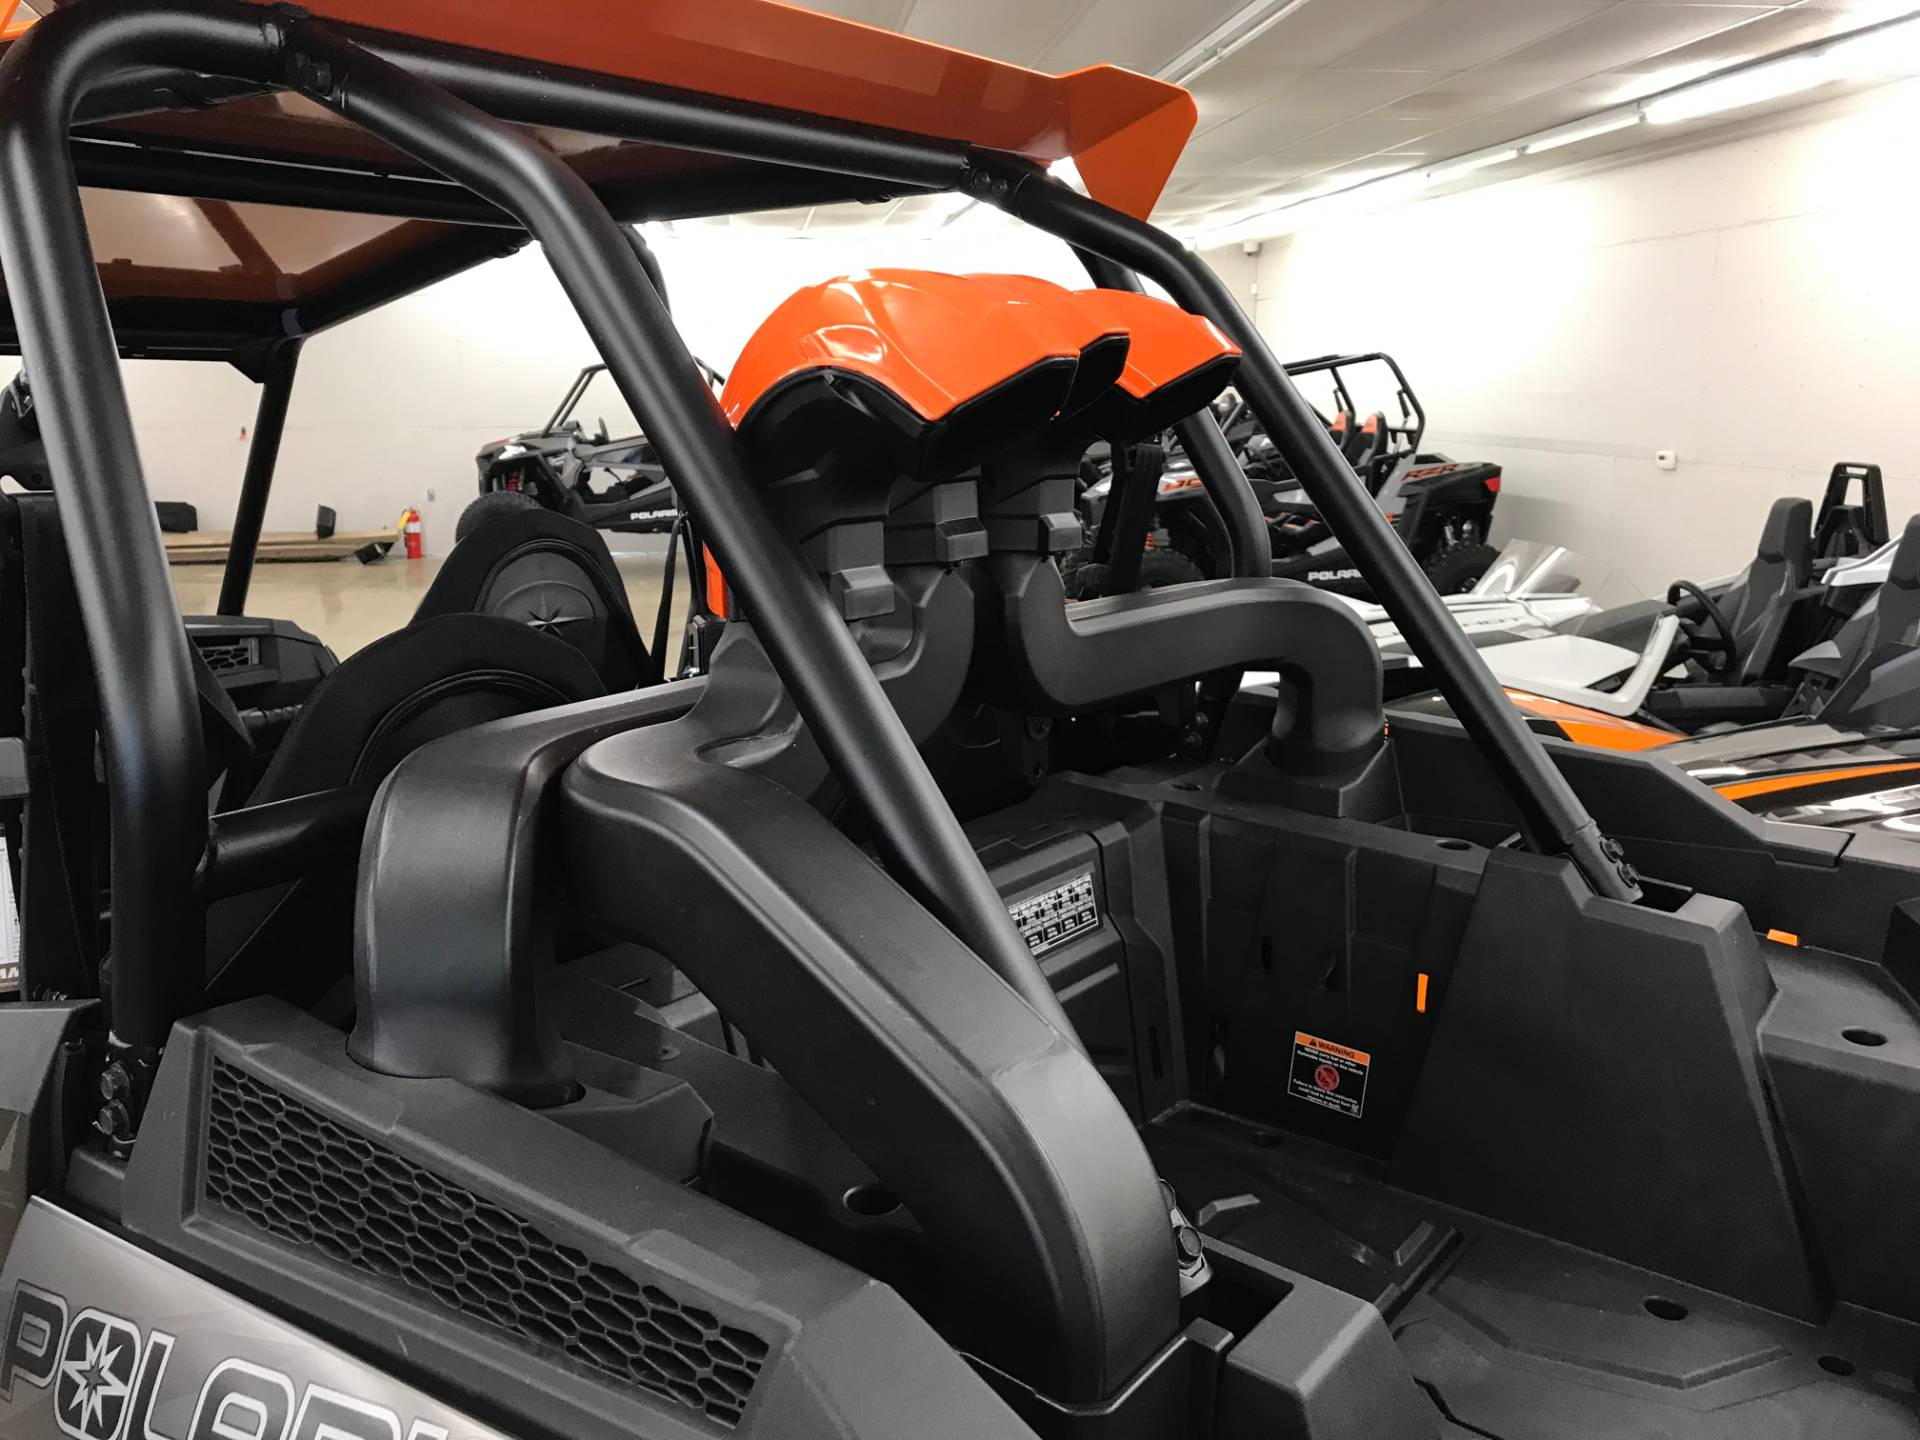 2019 Polaris RZR XP 4 1000 High Lifter in Chicora, Pennsylvania